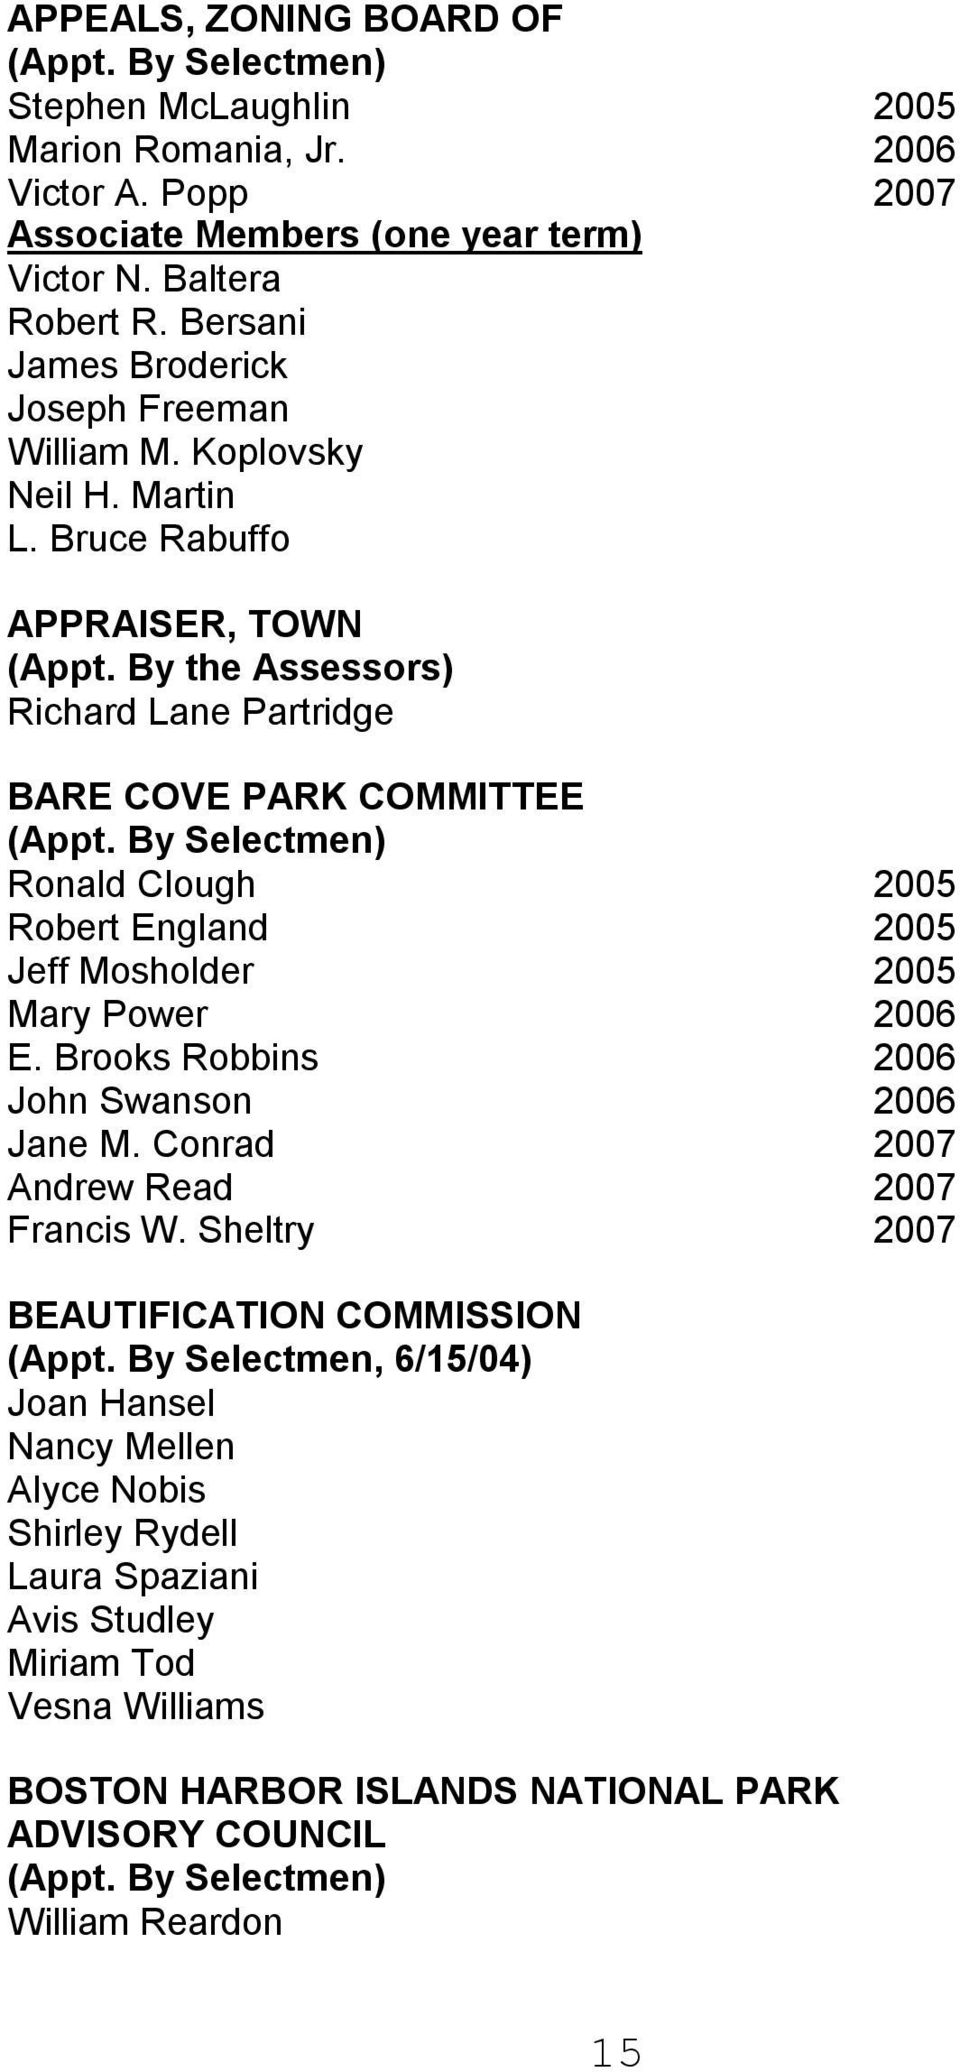 By Selectmen) Ronald Clough 2005 Robert England 2005 Jeff Mosholder 2005 Mary Power 2006 E. Brooks Robbins 2006 John Swanson 2006 Jane M. Conrad 2007 Andrew Read 2007 Francis W.